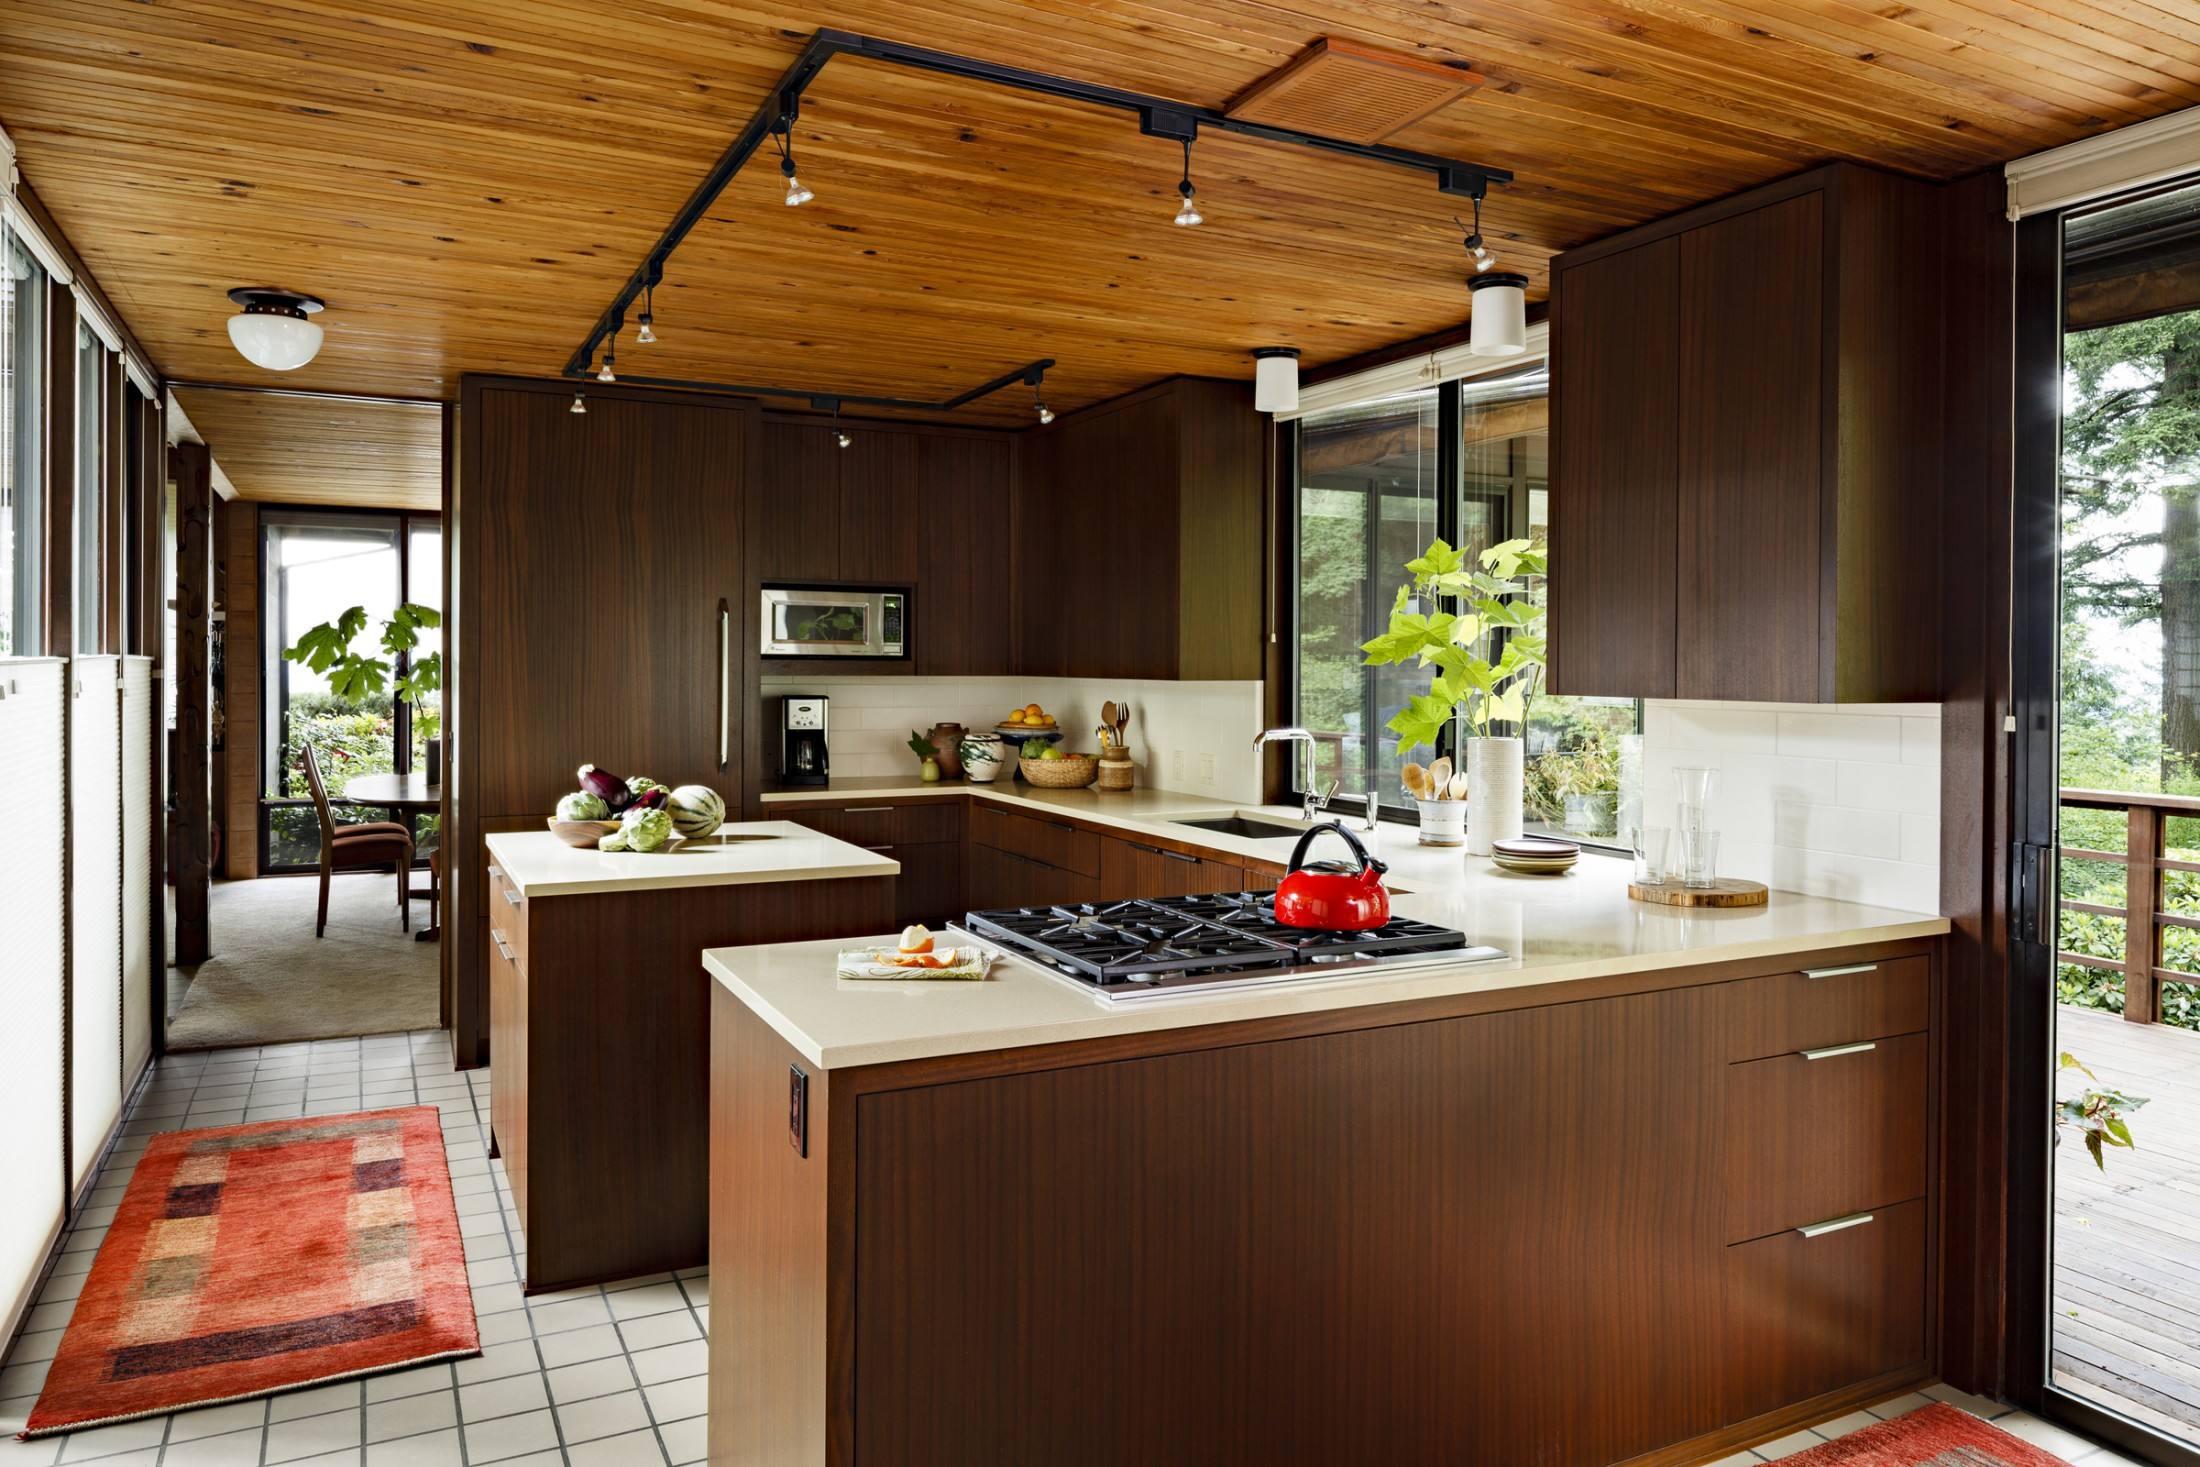 Ide dapur ber a midcentury modern Sumber katwillsonphotography